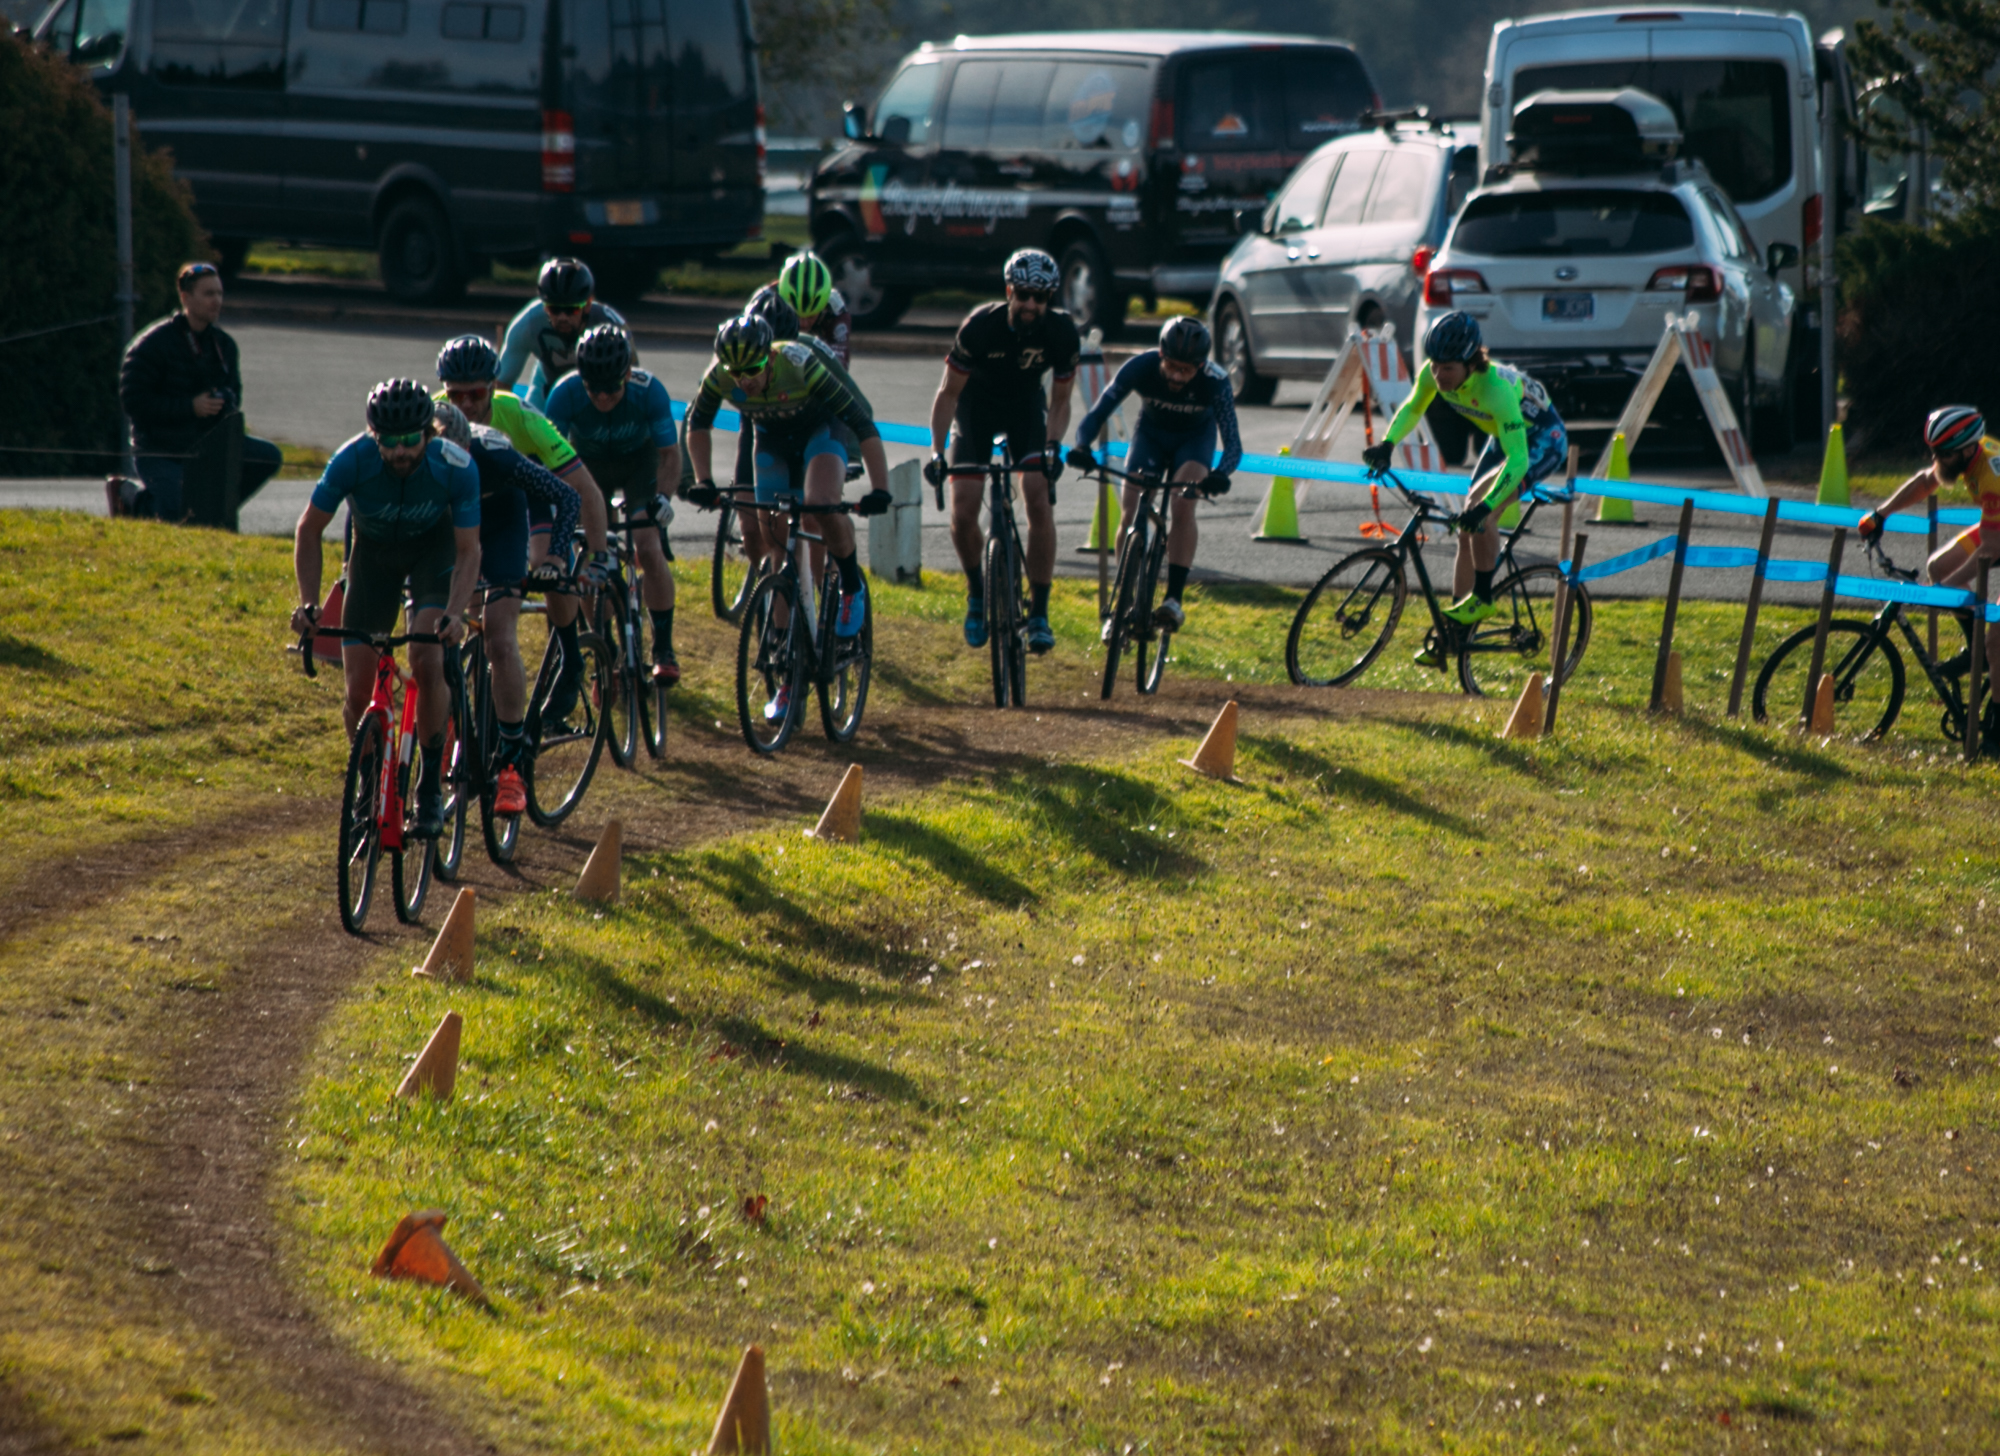 Cyclocross18_CCCX_RainierHS-40-mettlecycling.jpg